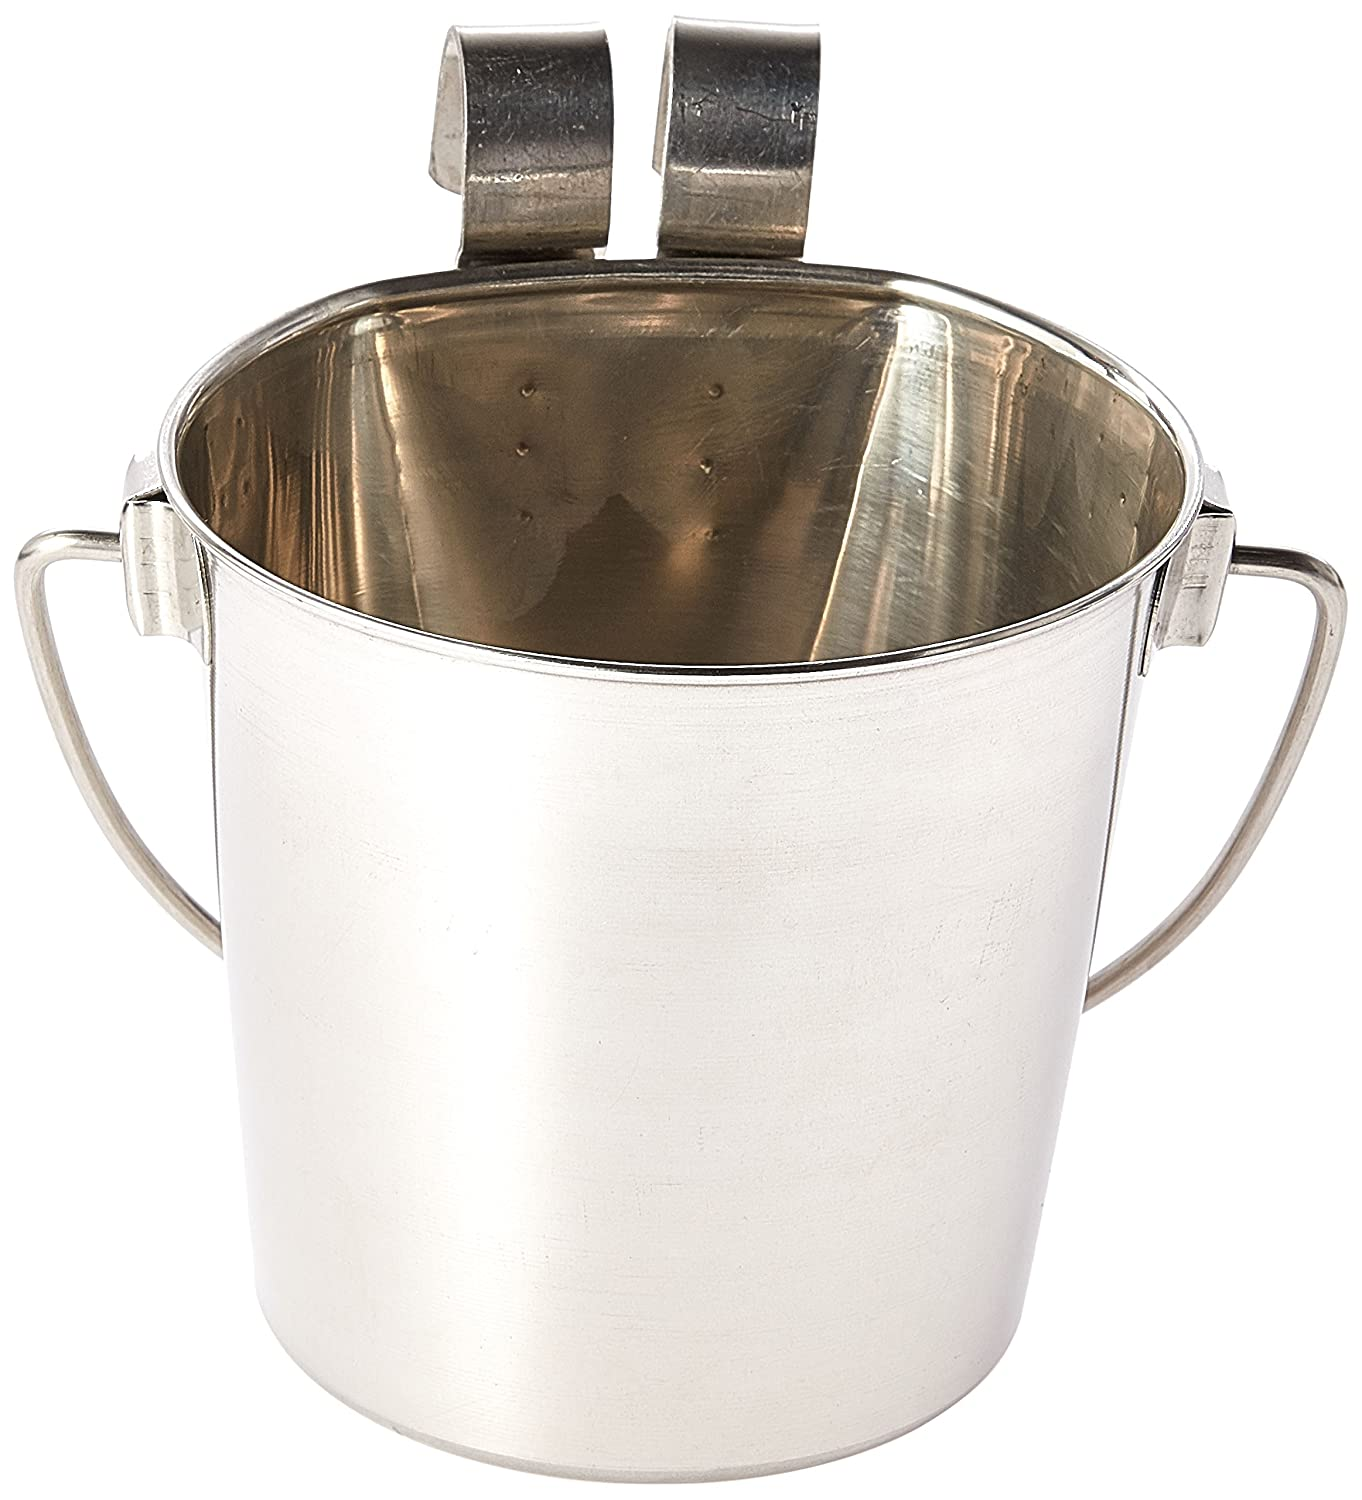 Indipets Heavy Duty Flat Sided Stainless Steel Pail 1-Quart 800106